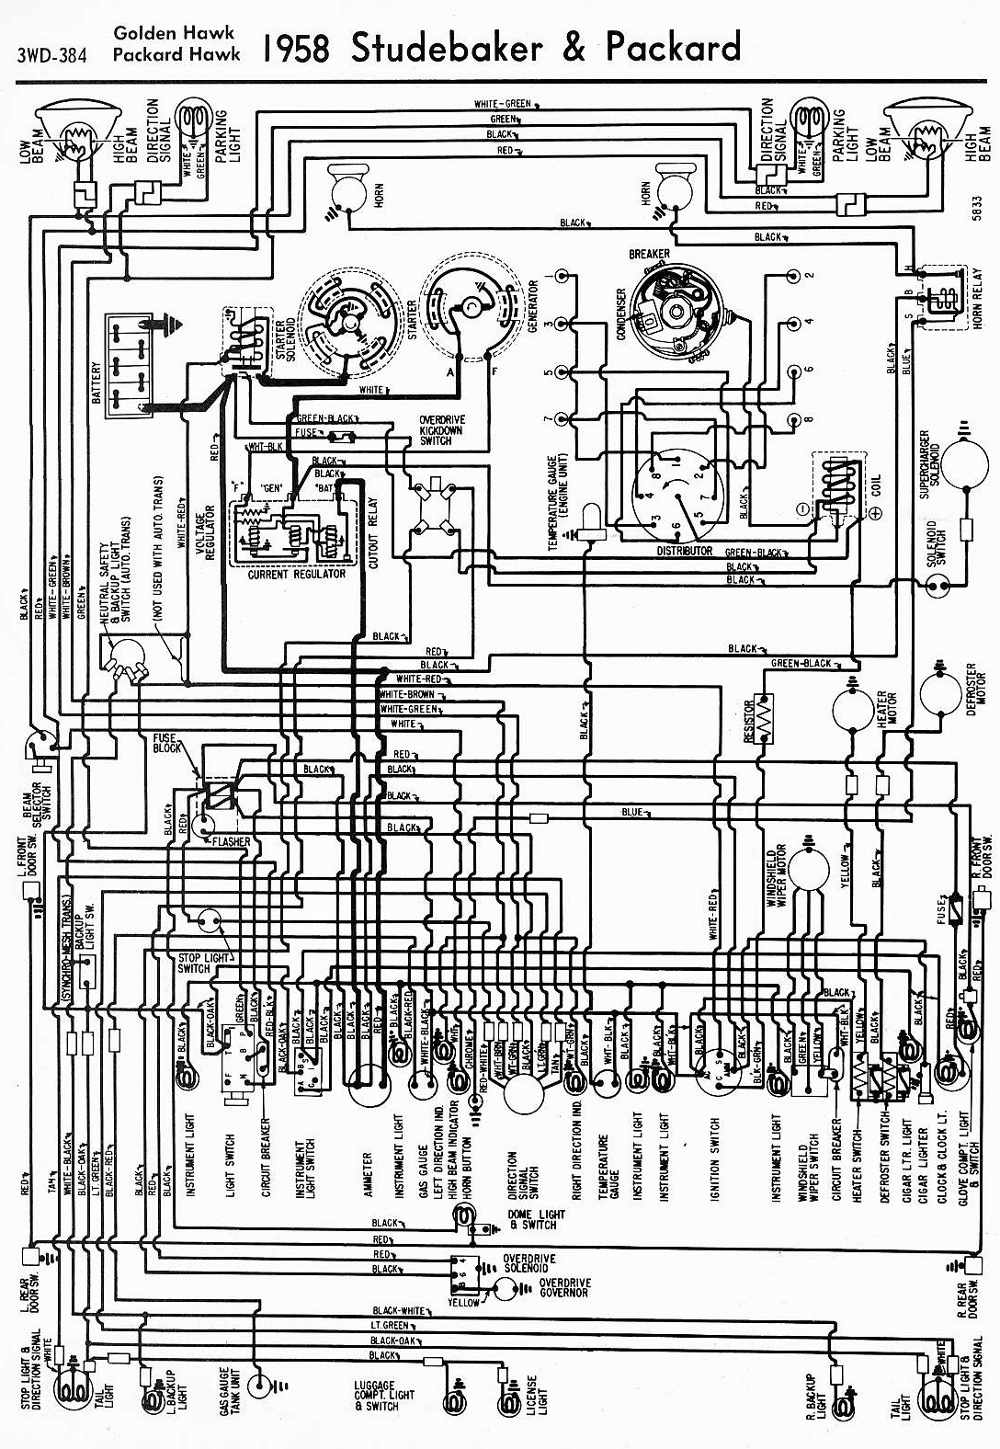 Packard Wiring Diagram On Packard Pdf Images Electrical Engine